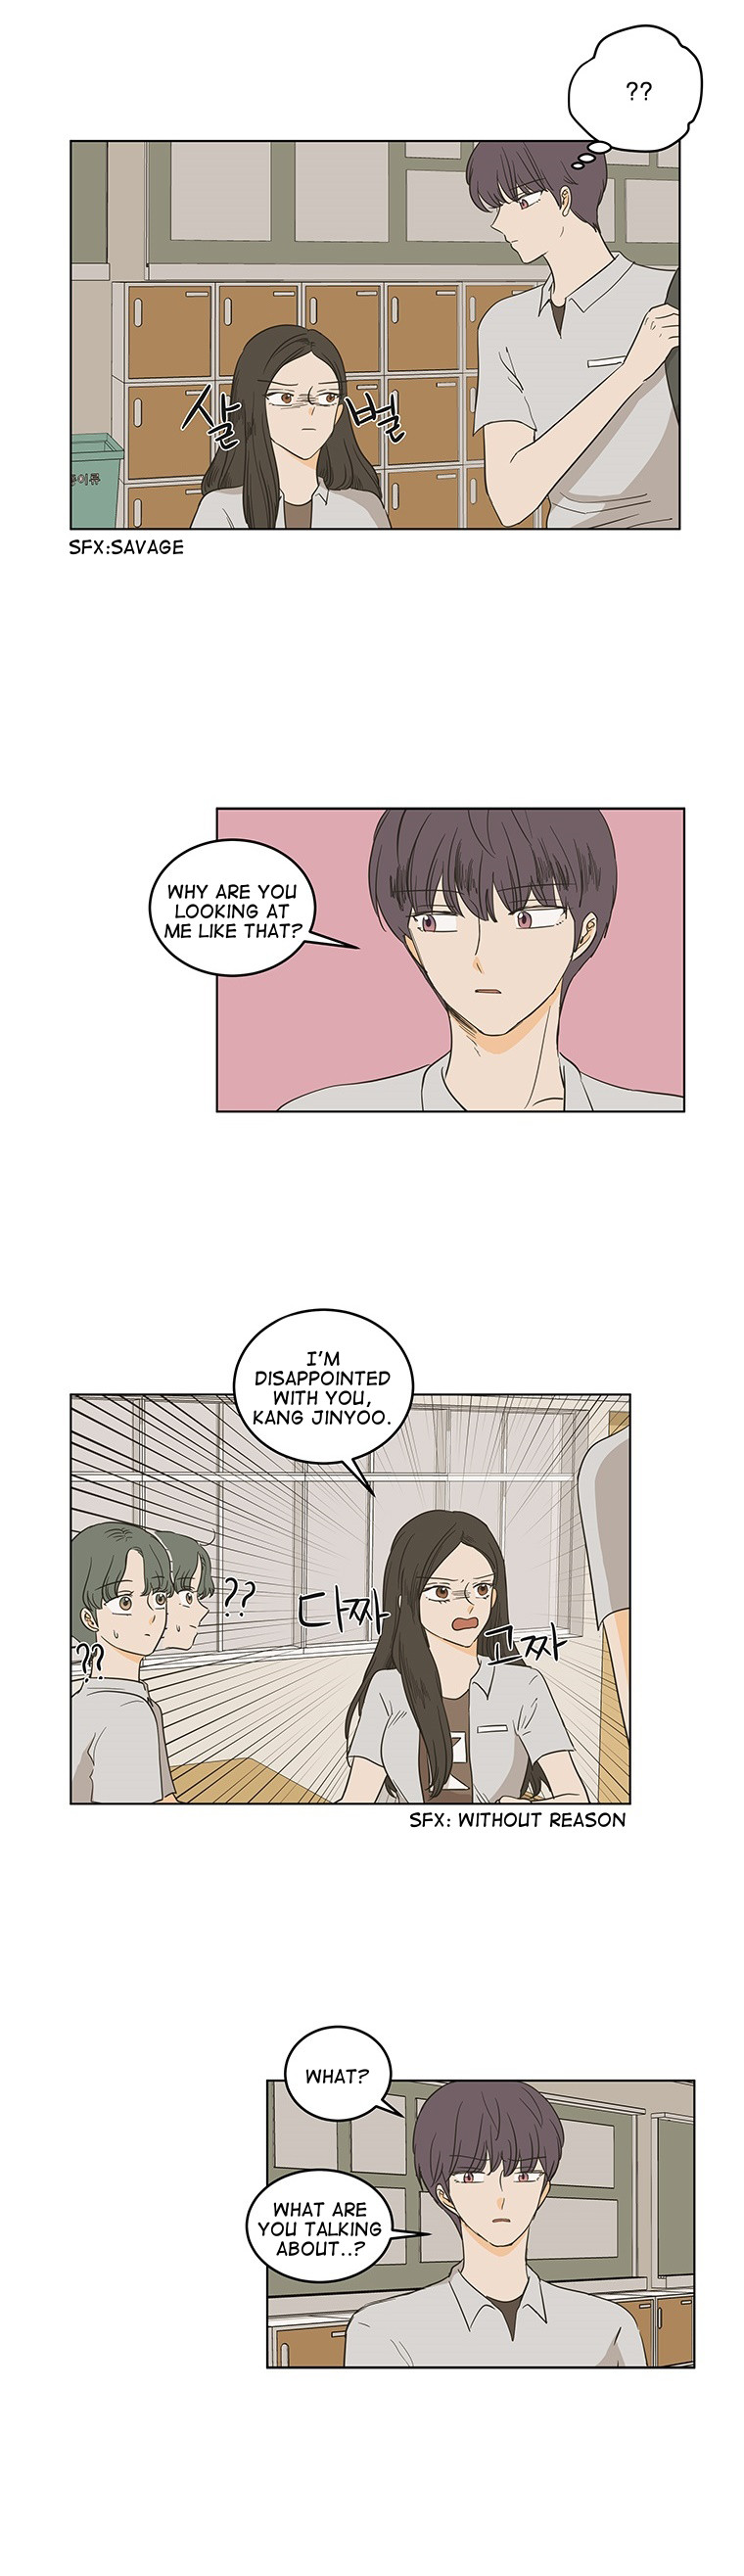 I Hate Love - Chapter 22